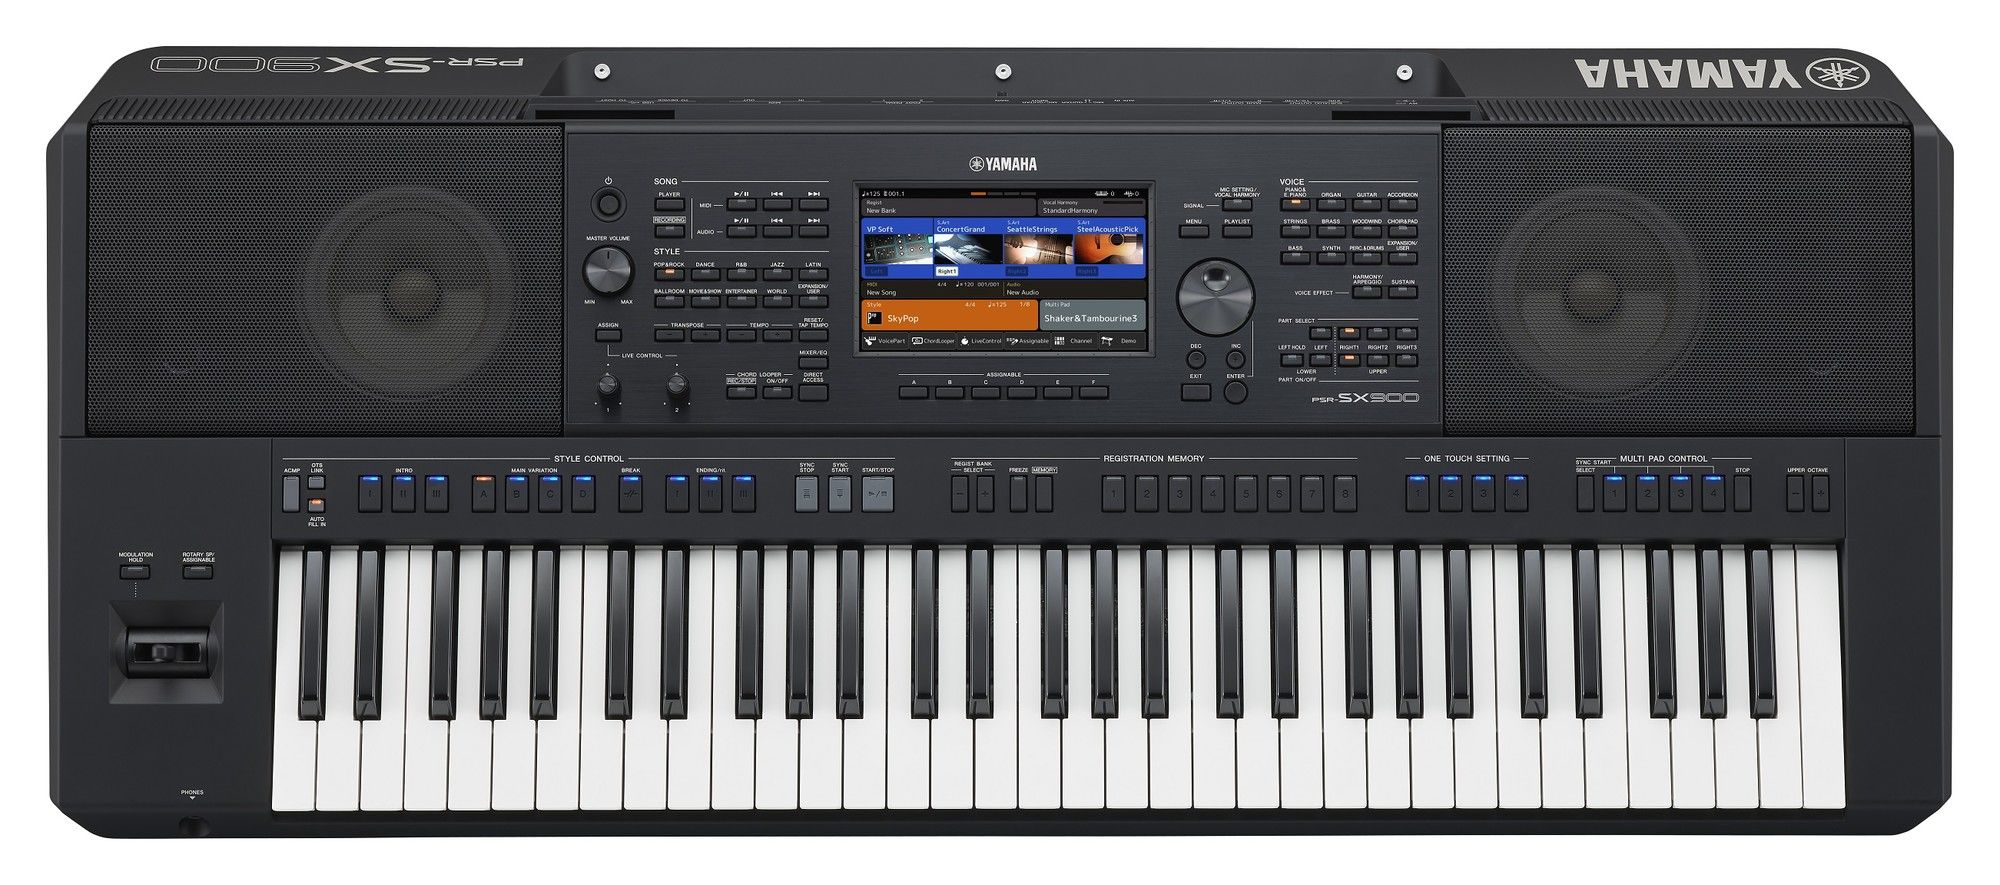 Yamaha PSR-SX700 en SX900 workstation keyboards